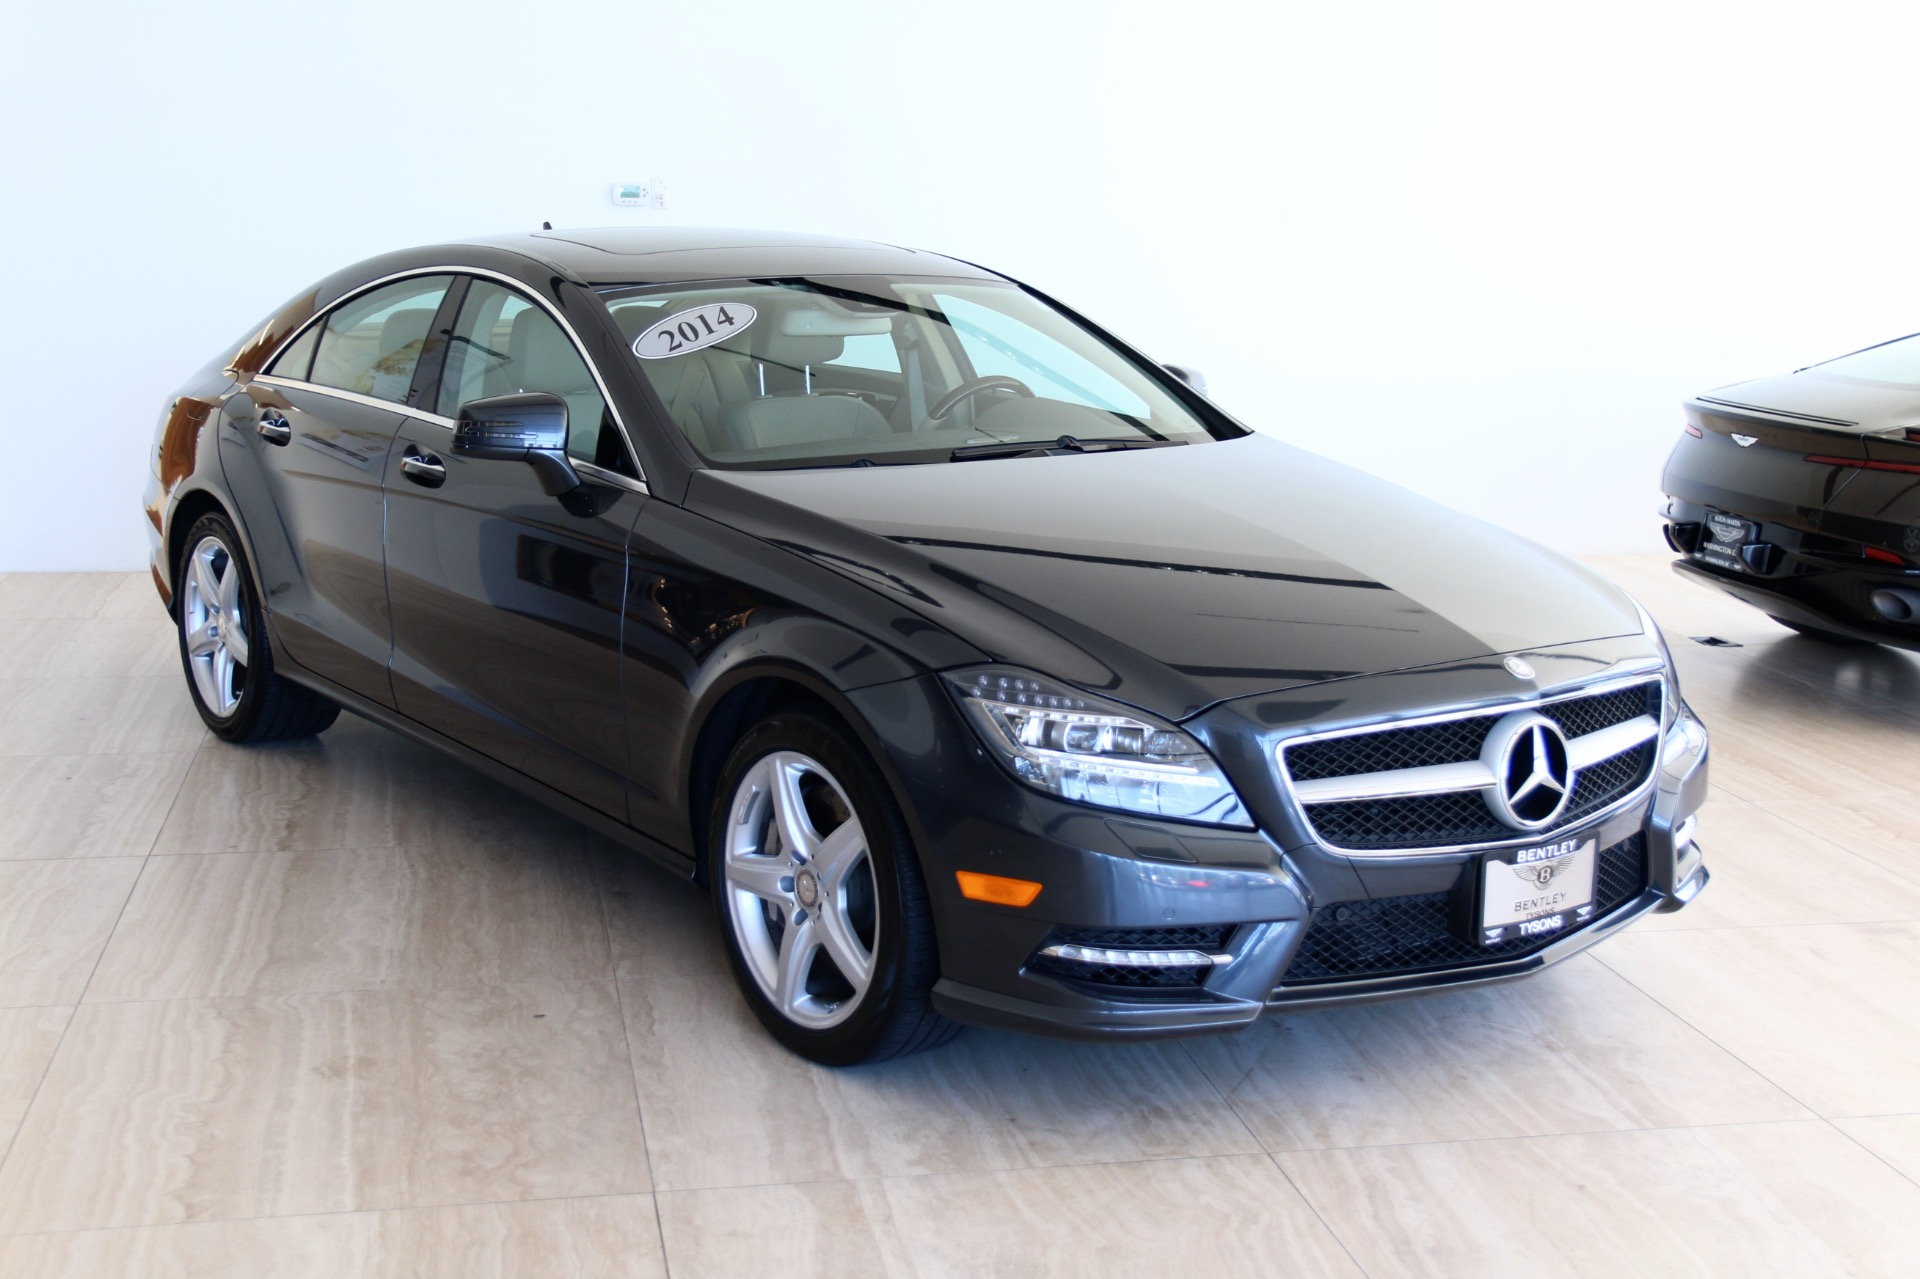 2014 mercedes benz cls class cls 550 4matic stock for 2014 mercedes benz cls class cls550 4matic